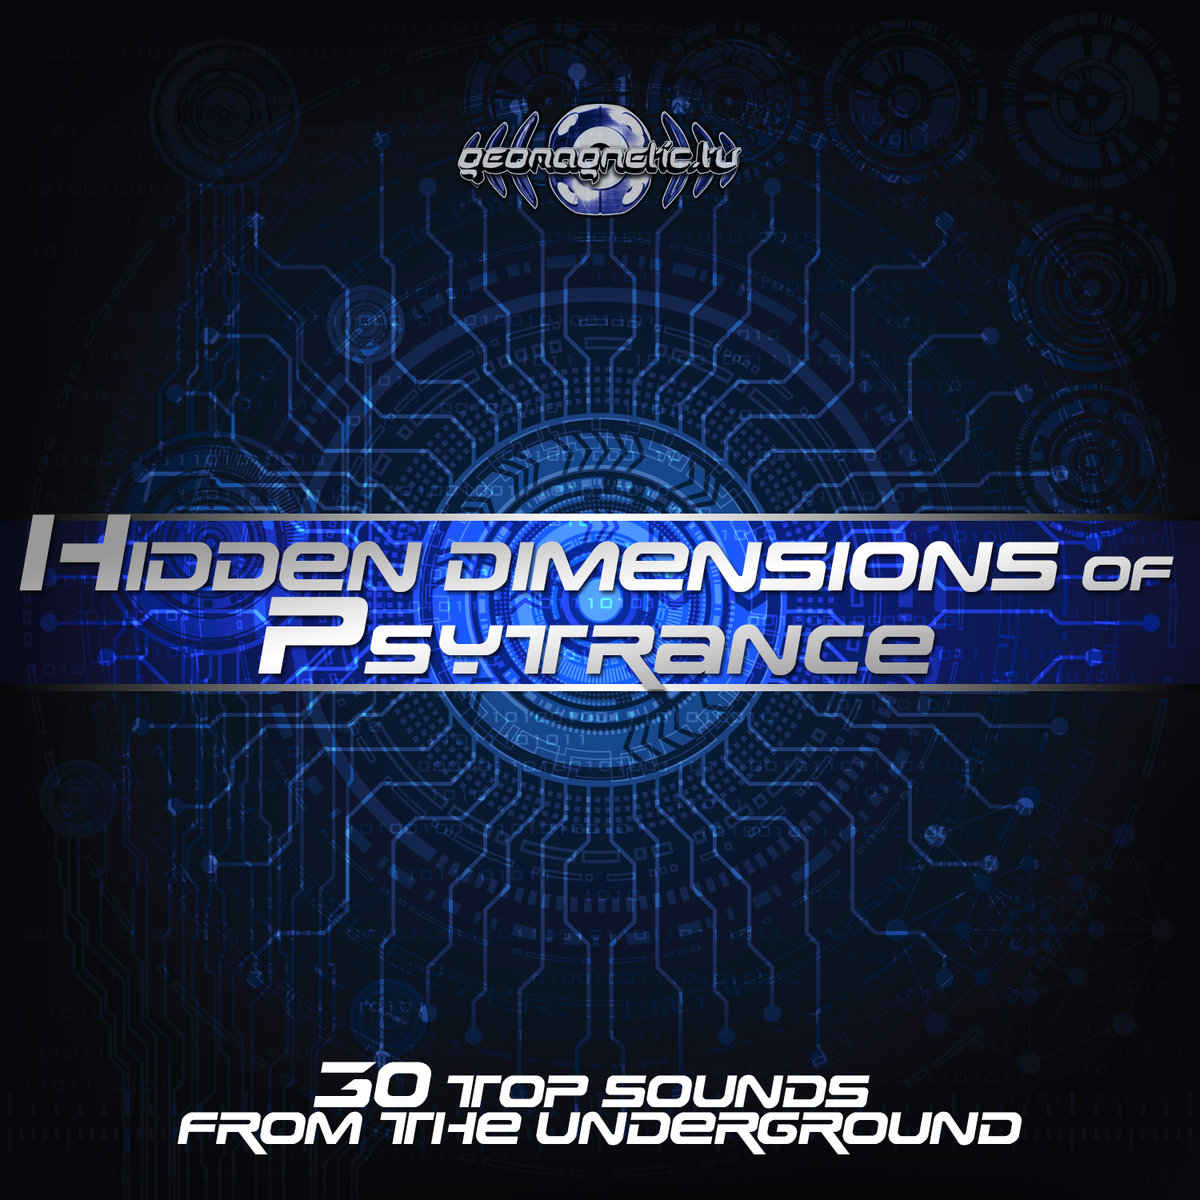 Coral - Sonic Boom @ 'Various Artists - Hidden Dimensions of Psytrance (30 Top Sounds From The Underground)' album (electronic, goa)